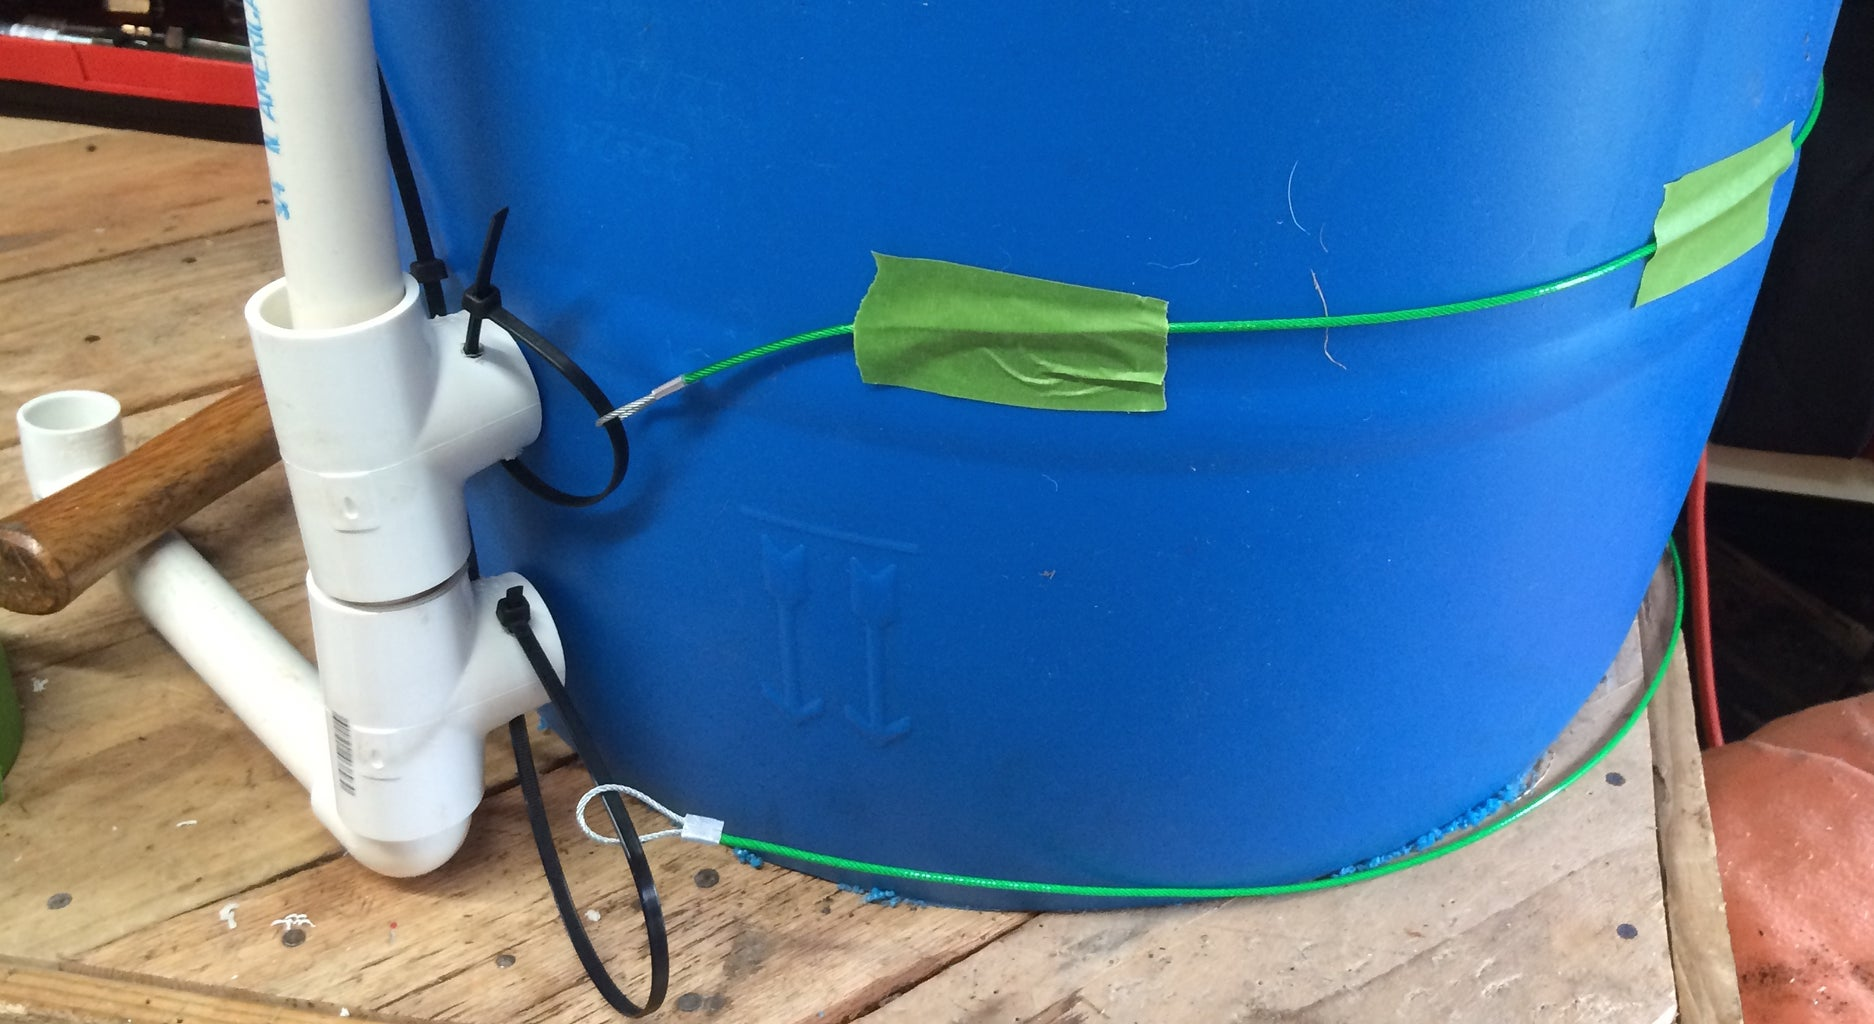 Add the Biogas Inlet to the Collector